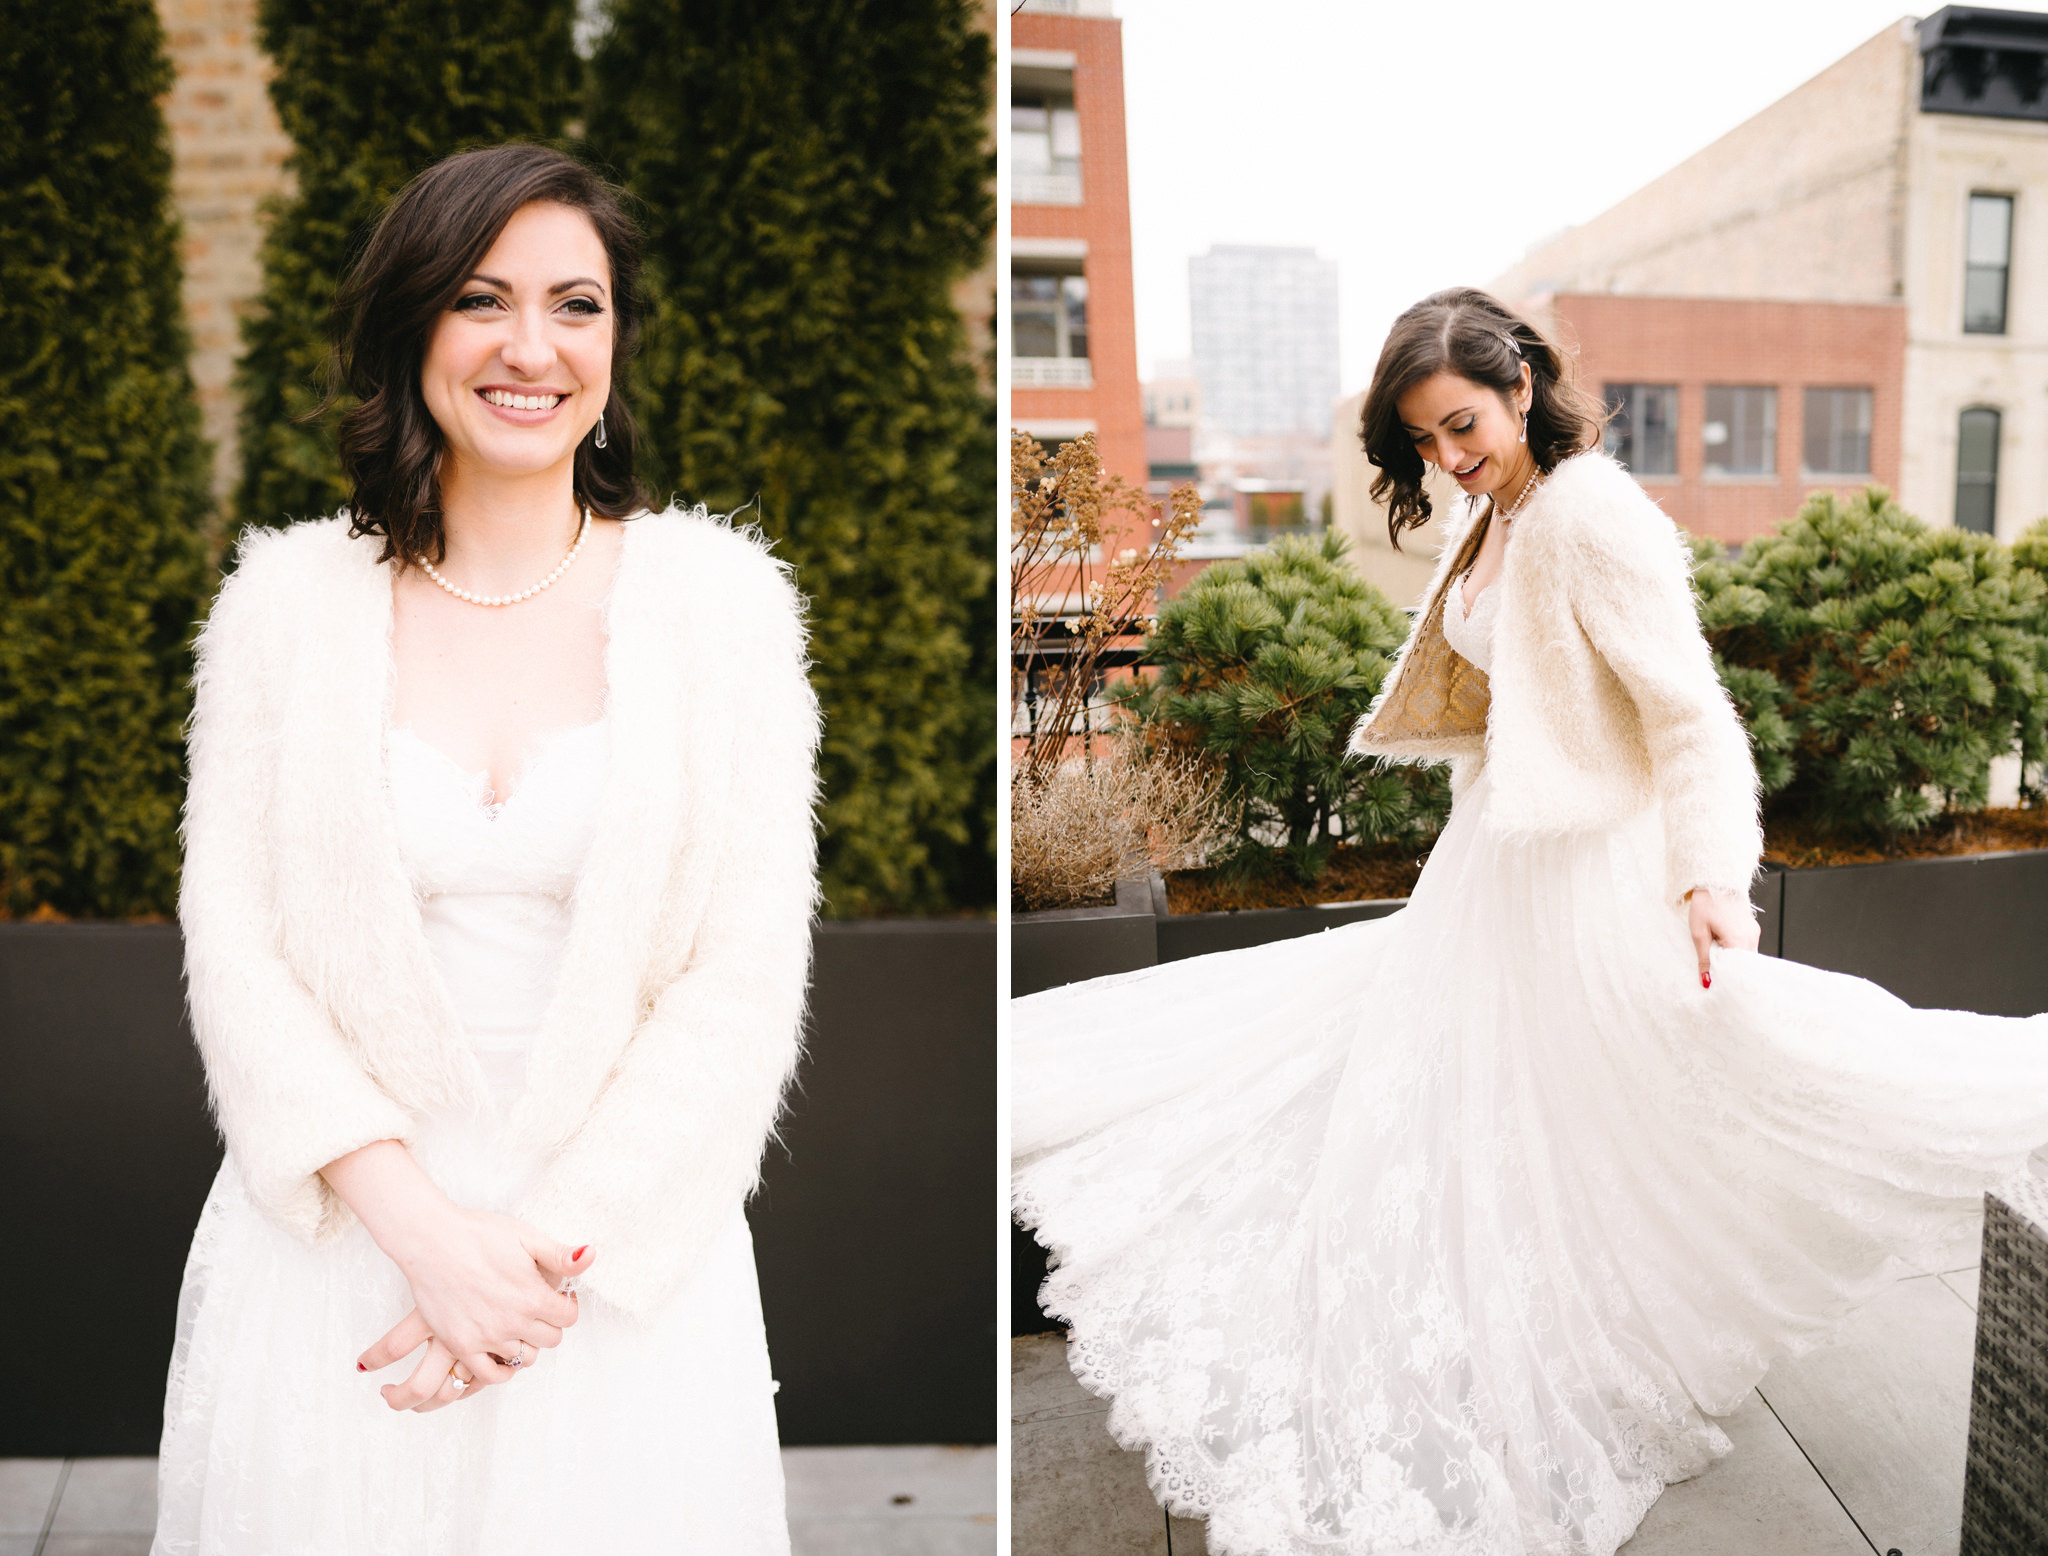 087-rempel-photography-chicago-wedding-inspiration-west-loop-fulton-market-caitlin-max-loft-lucia-venue-lindsey-marino-city-bbq-dana-hotel-and-spa.jpg